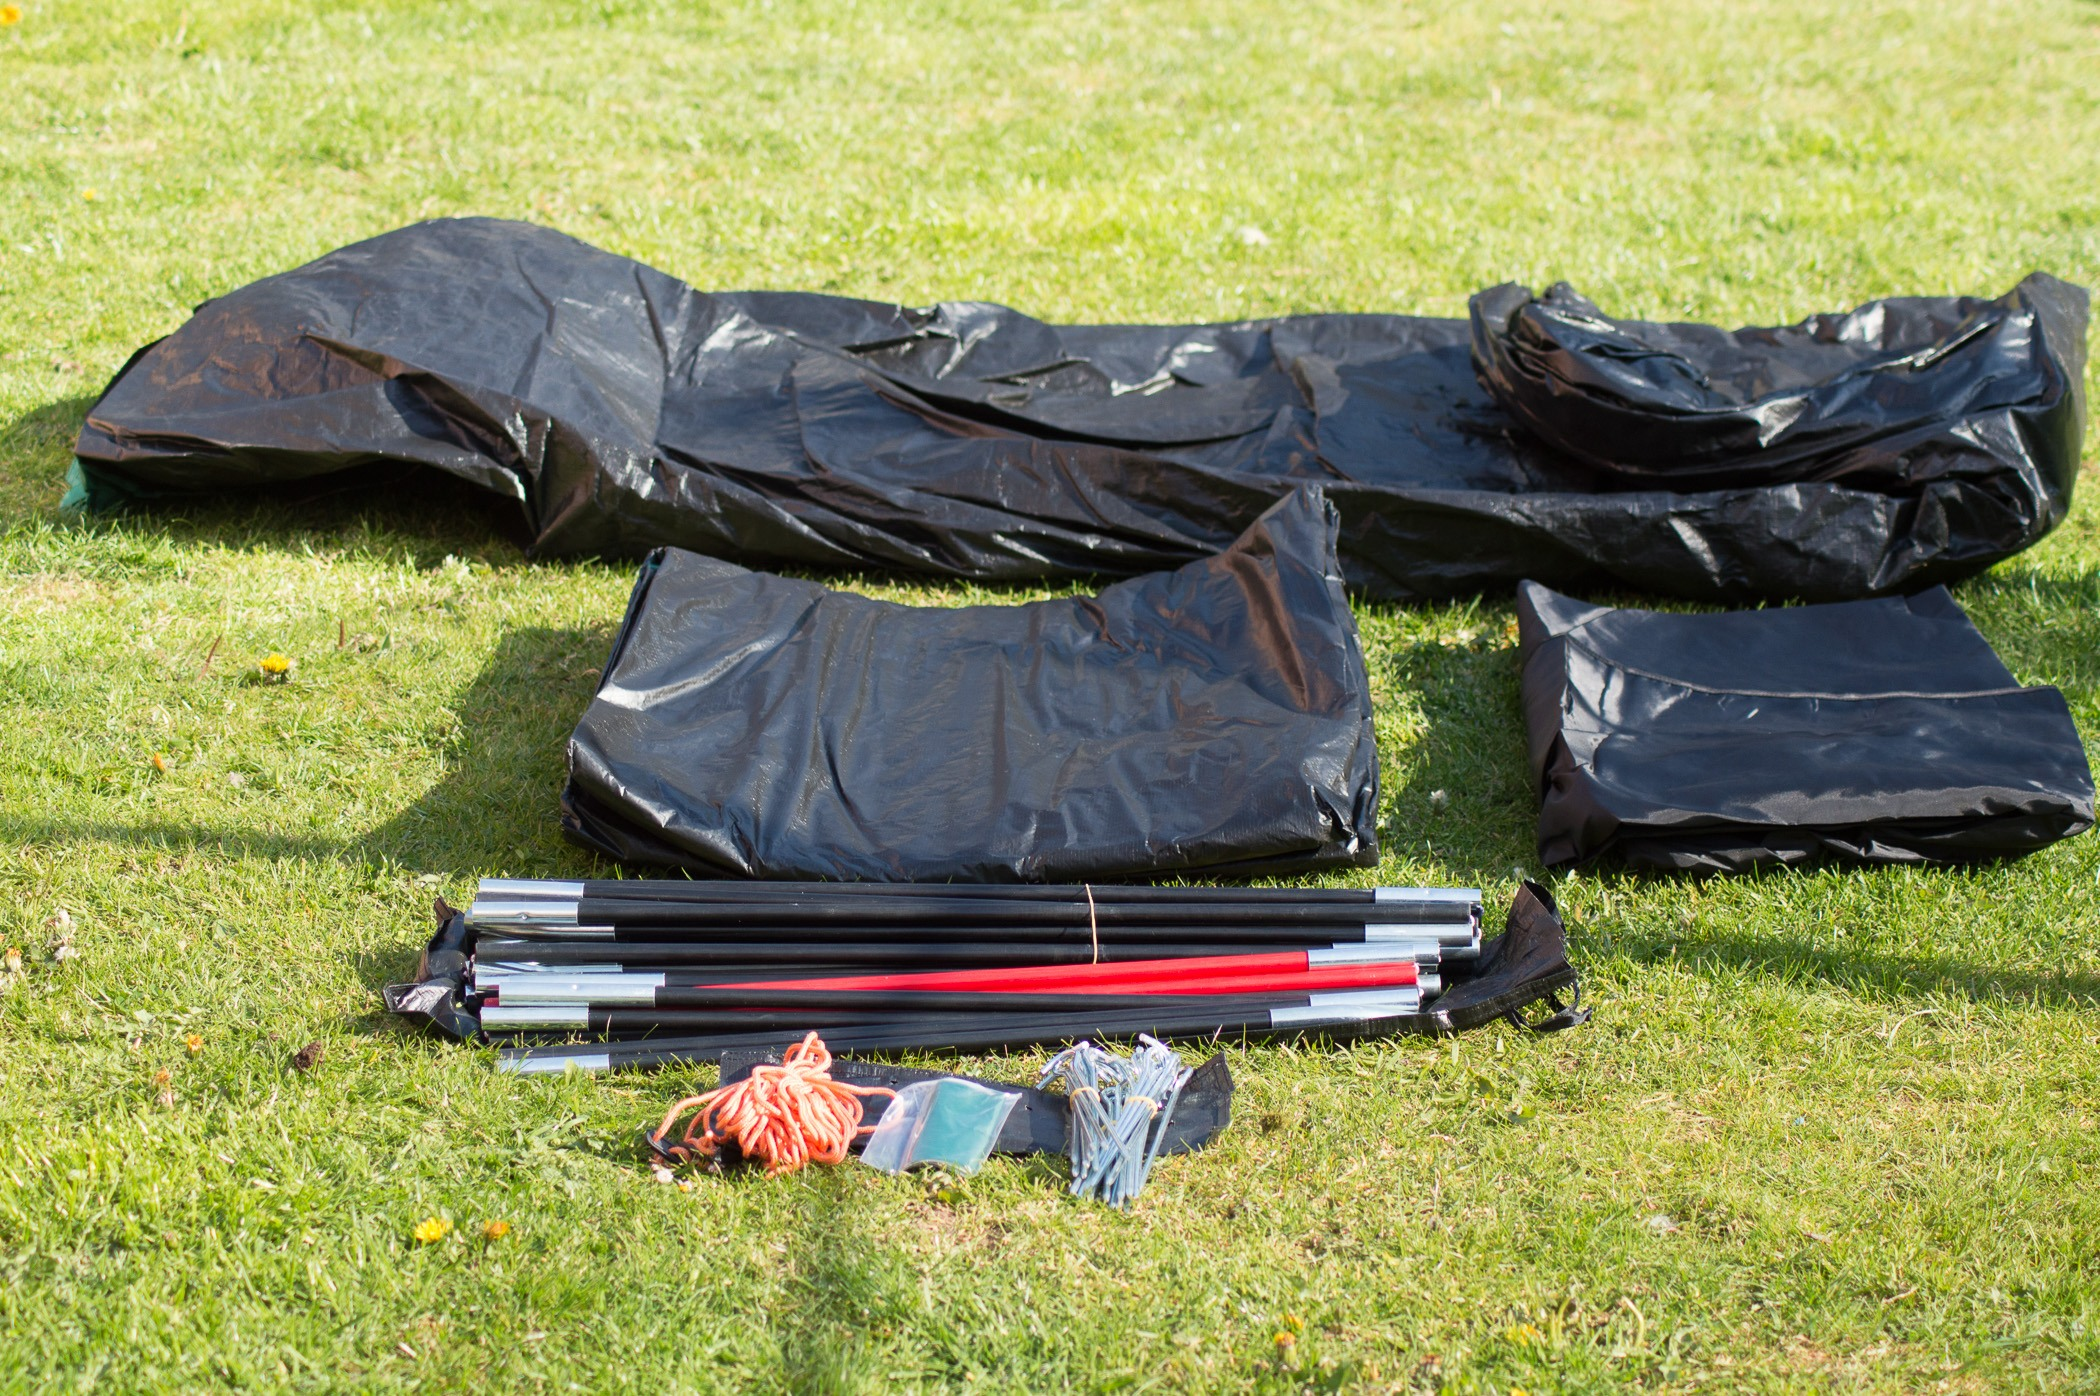 Contents of tent bag